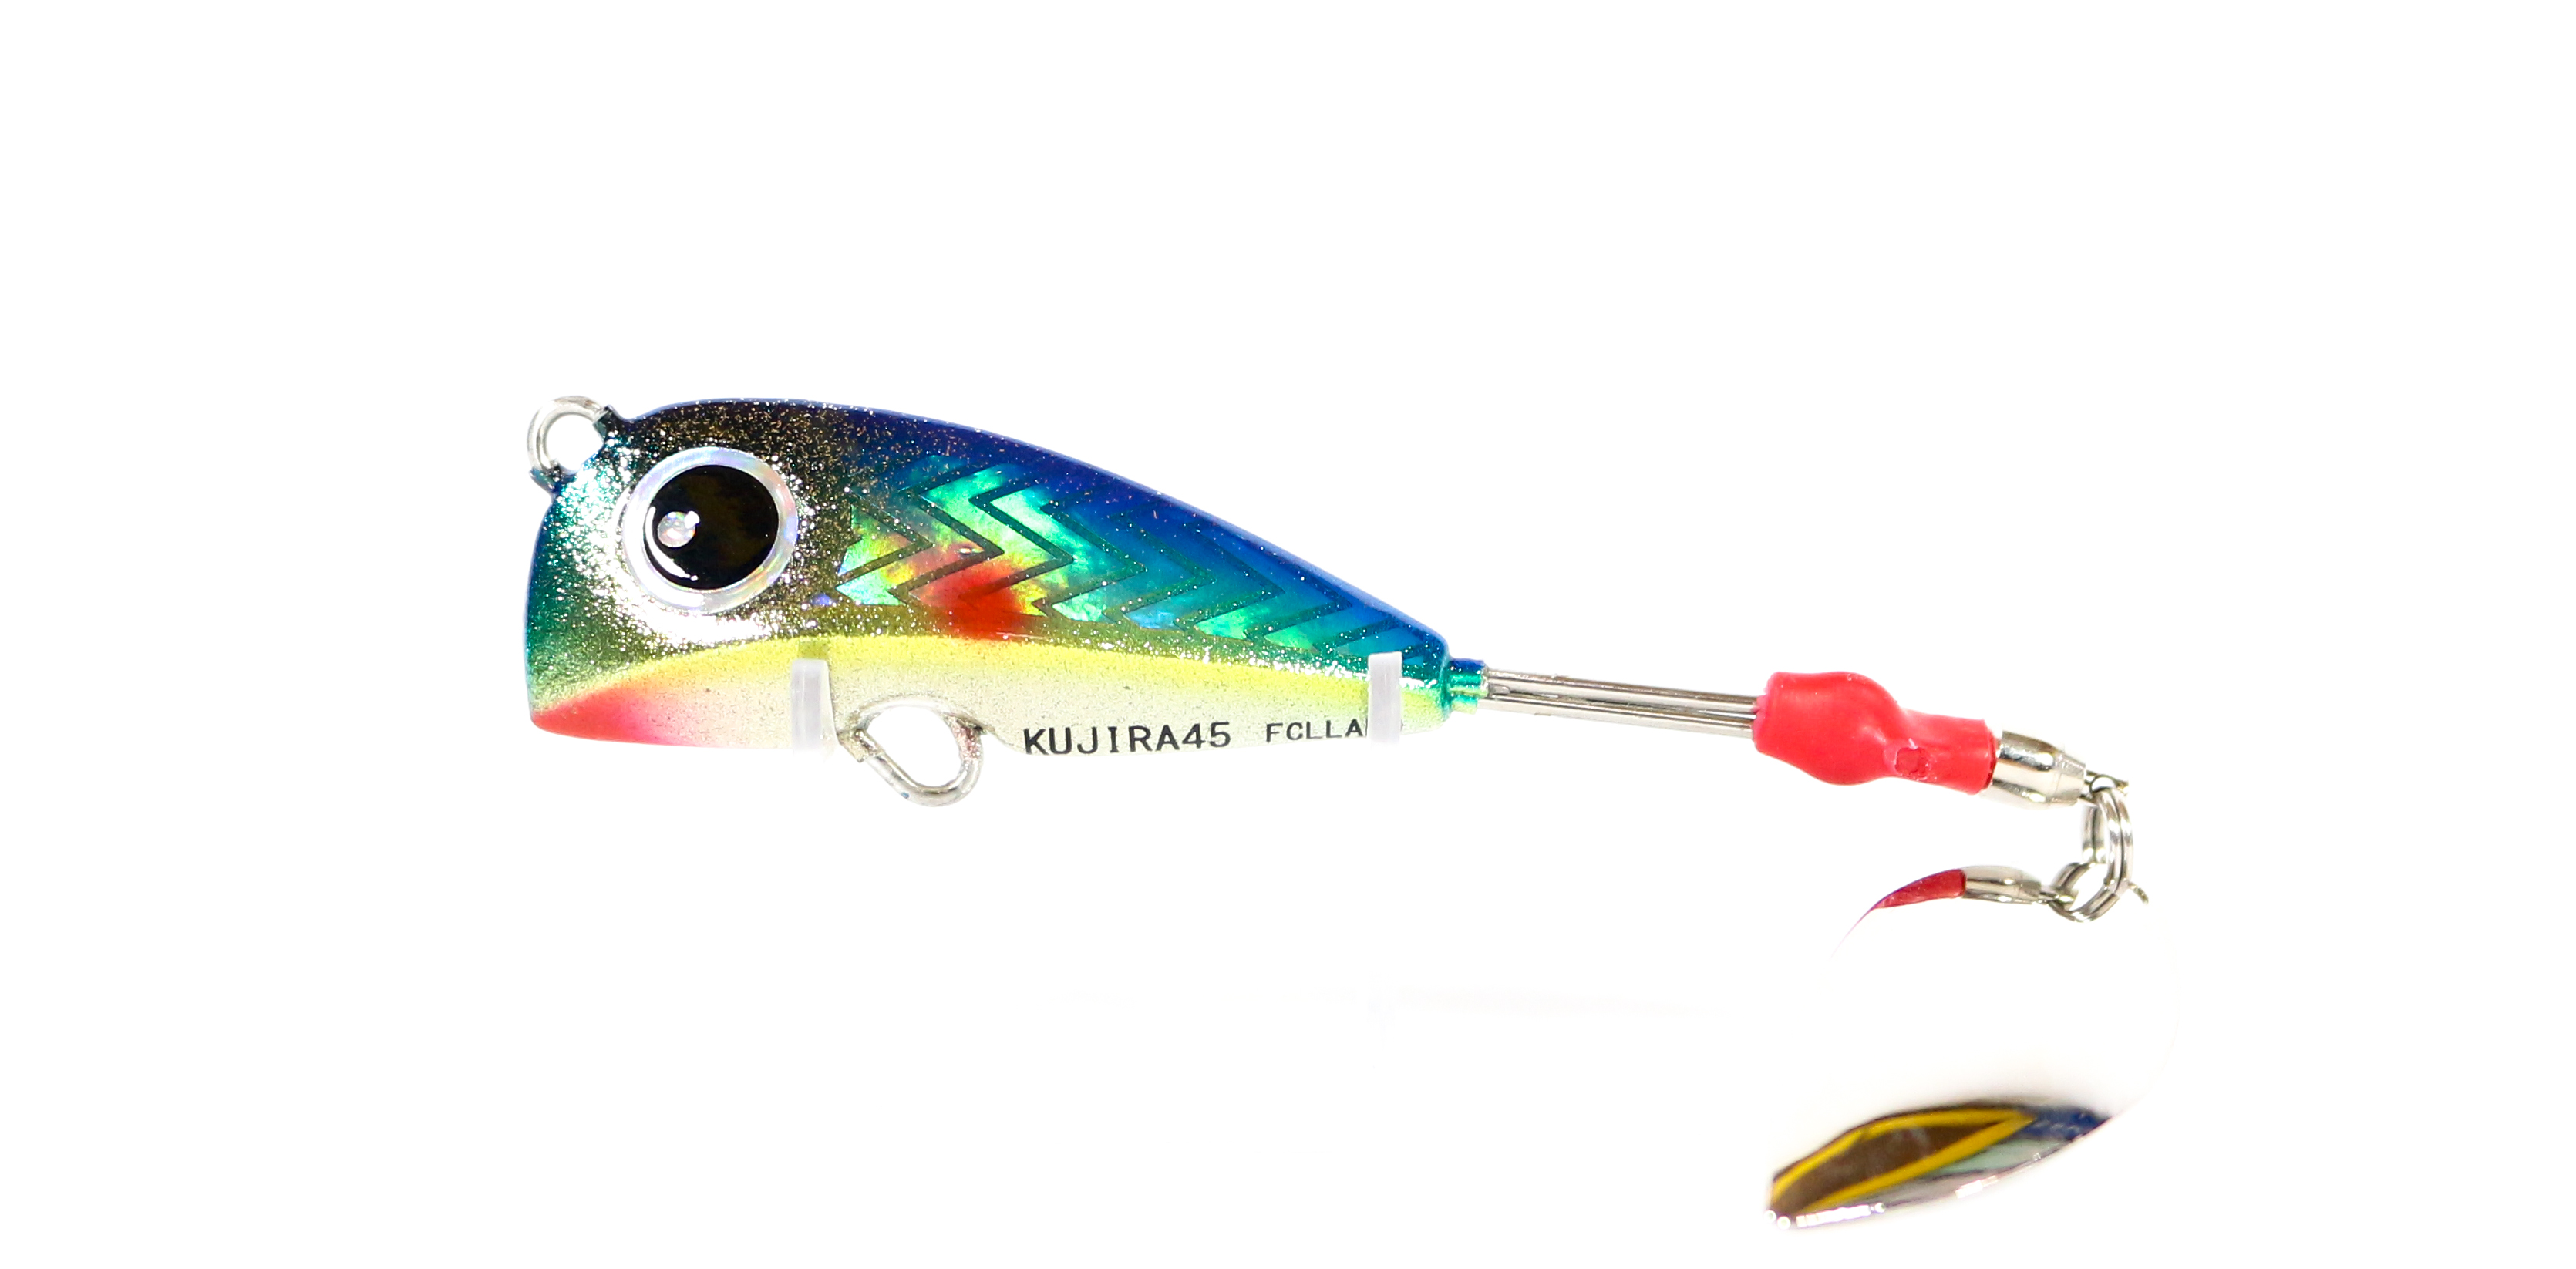 FCL Labo Spinner Tail Madai Jig Kujira 45 Grams Sinking Lure Blue (1100)